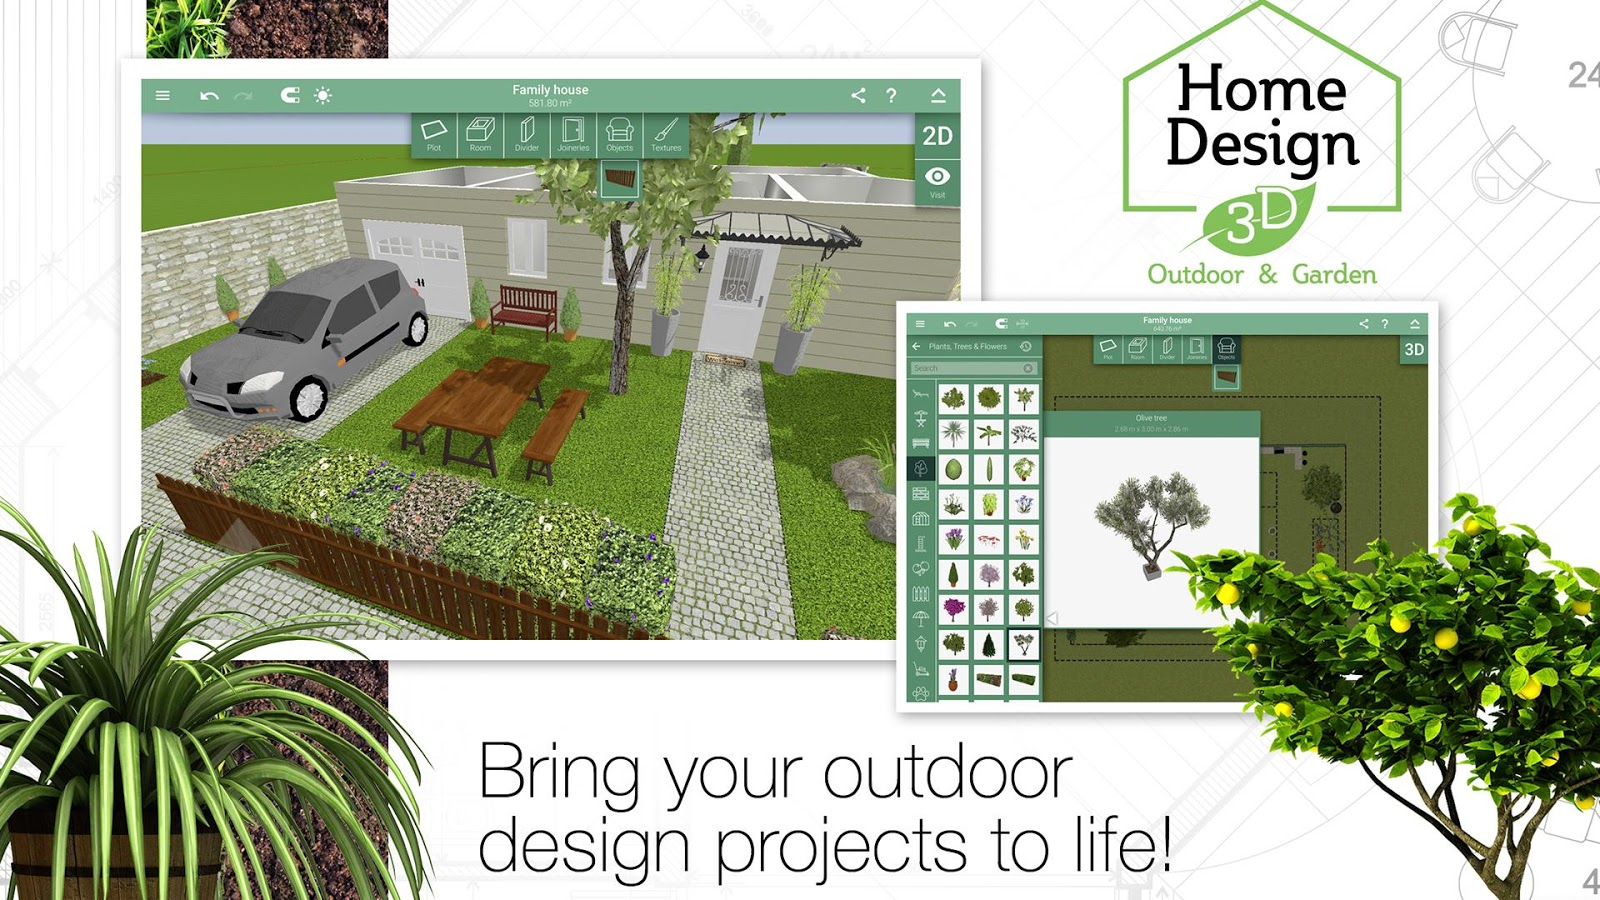 Home design 3d outdoor garden android apps on google play Design your house app